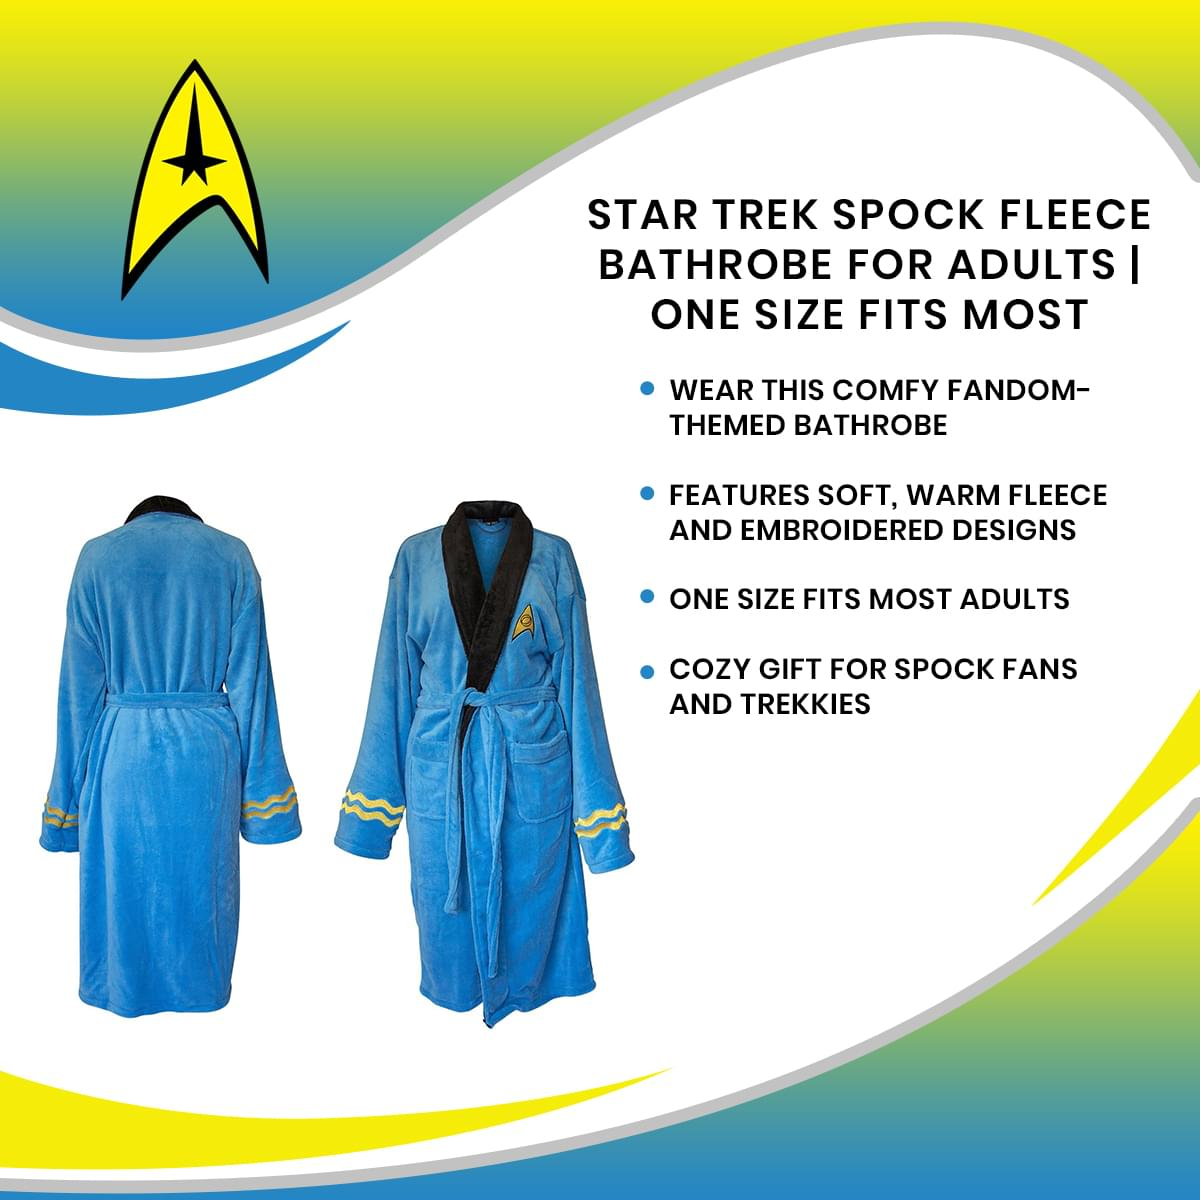 Star Trek Spock Fleece Bathrobe for Adults | One Size Fits Most